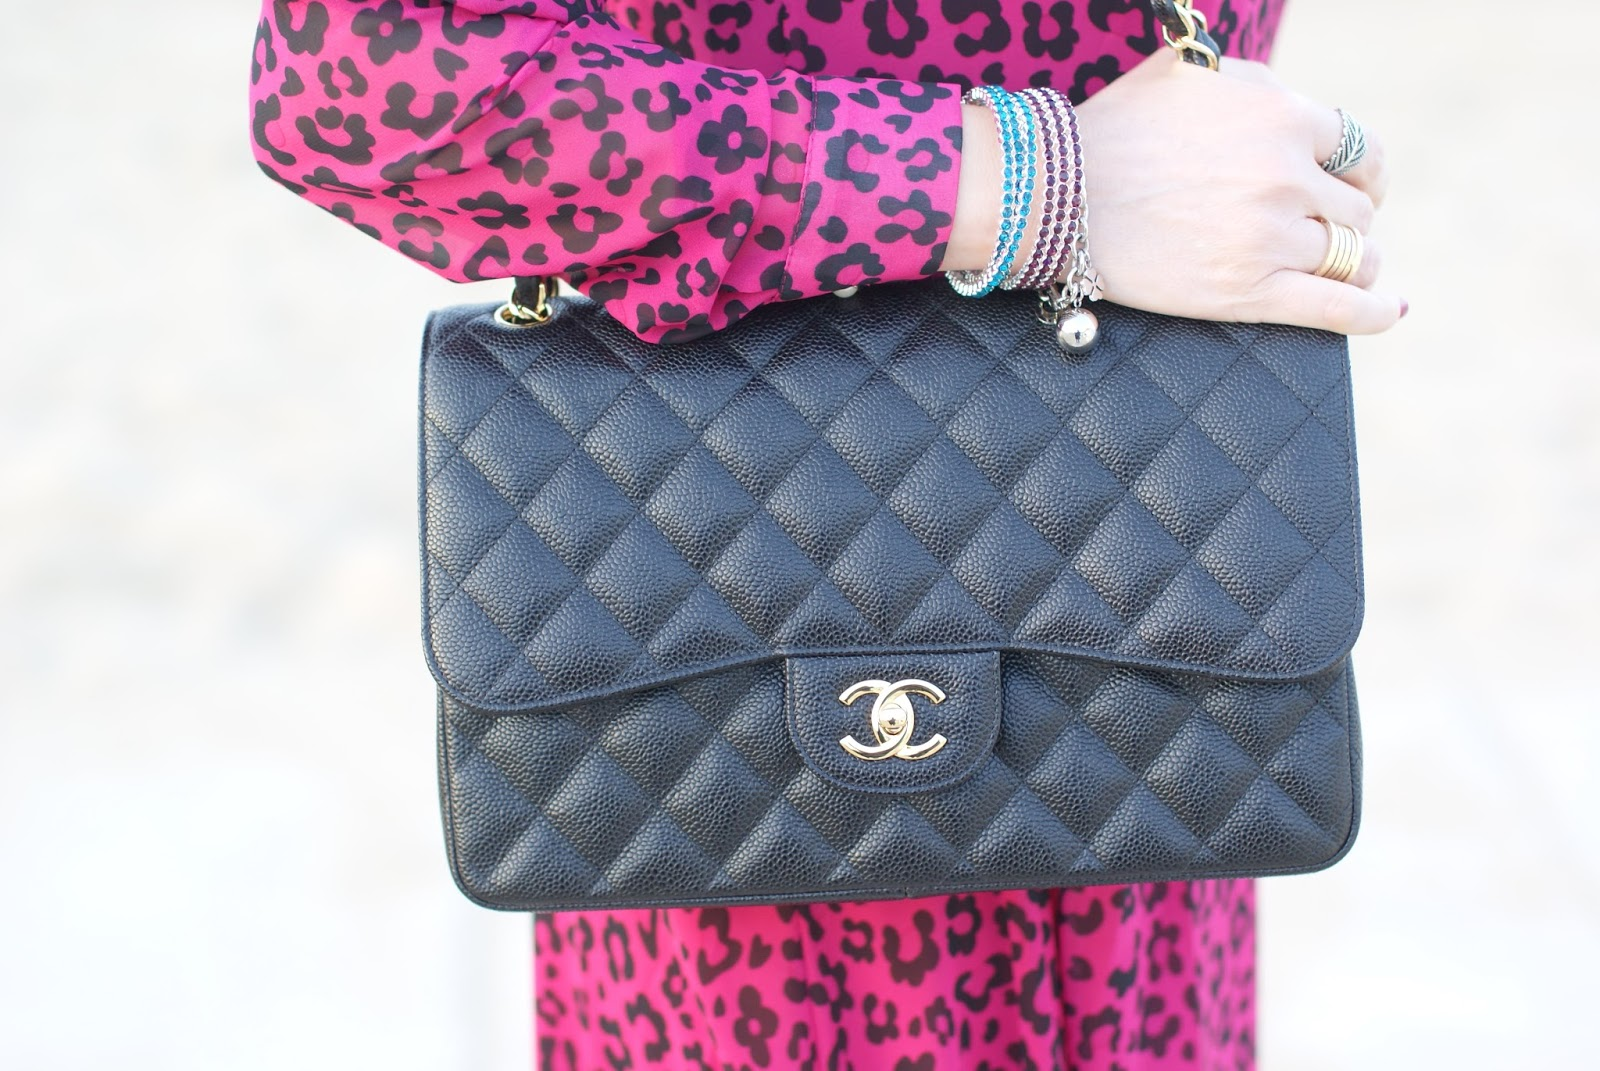 Chanel 2.55 caviar bag, Fashion and Cookies fashion blog, fashion blogger style